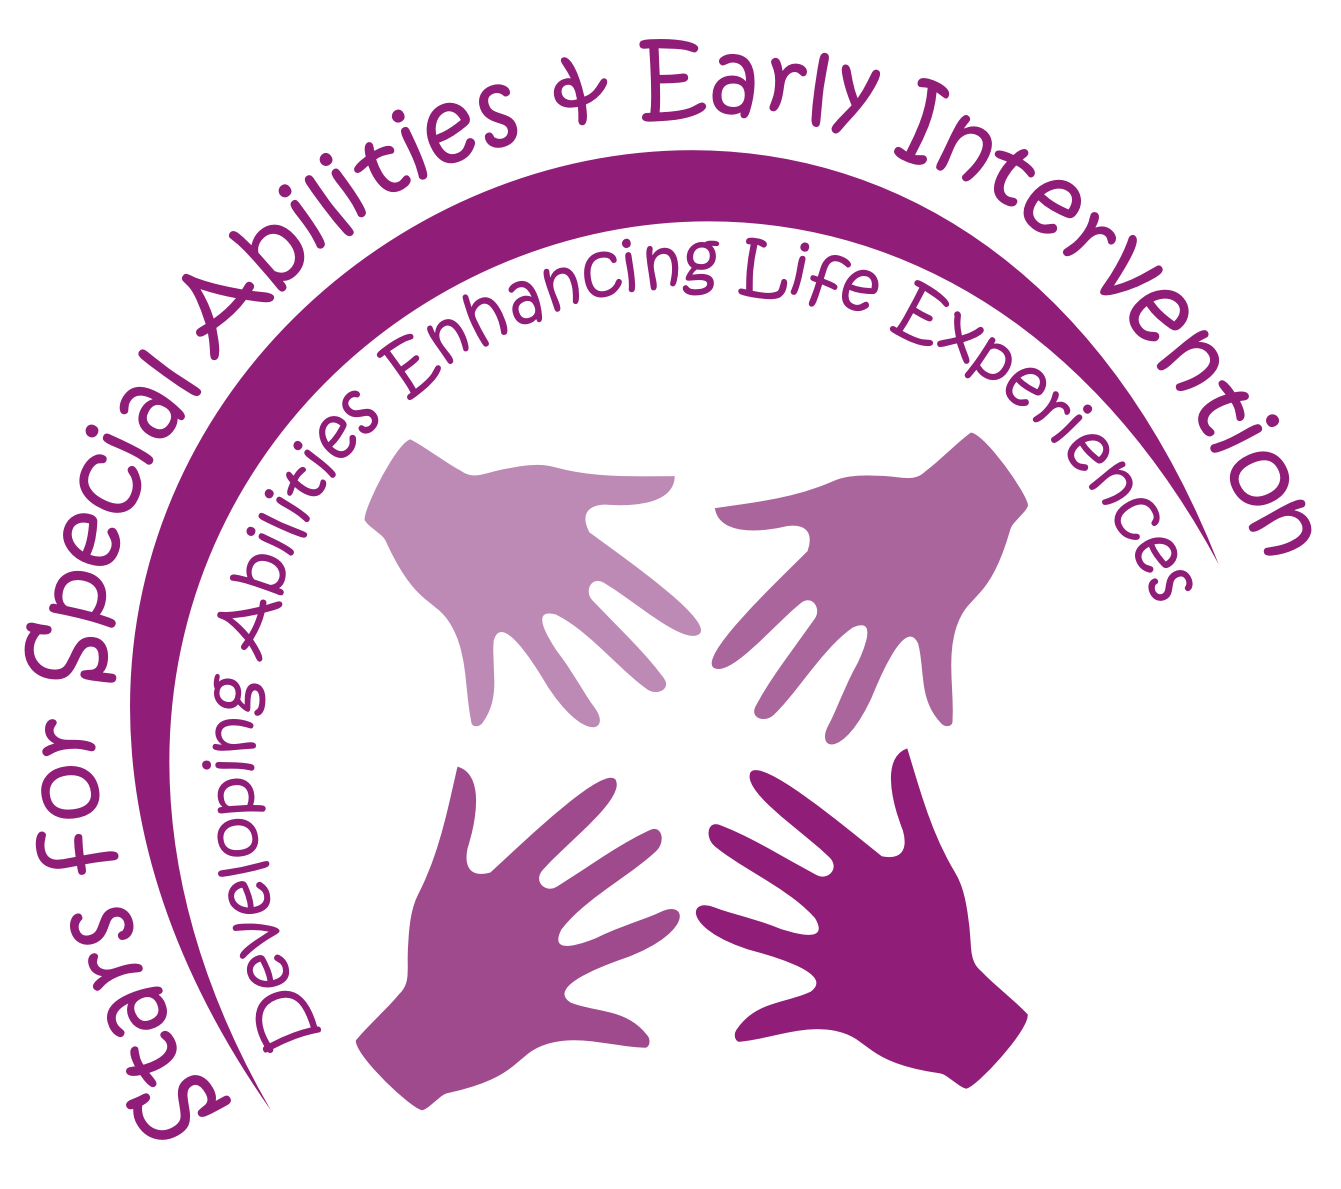 Stars for Special Abilities & Early Intervention